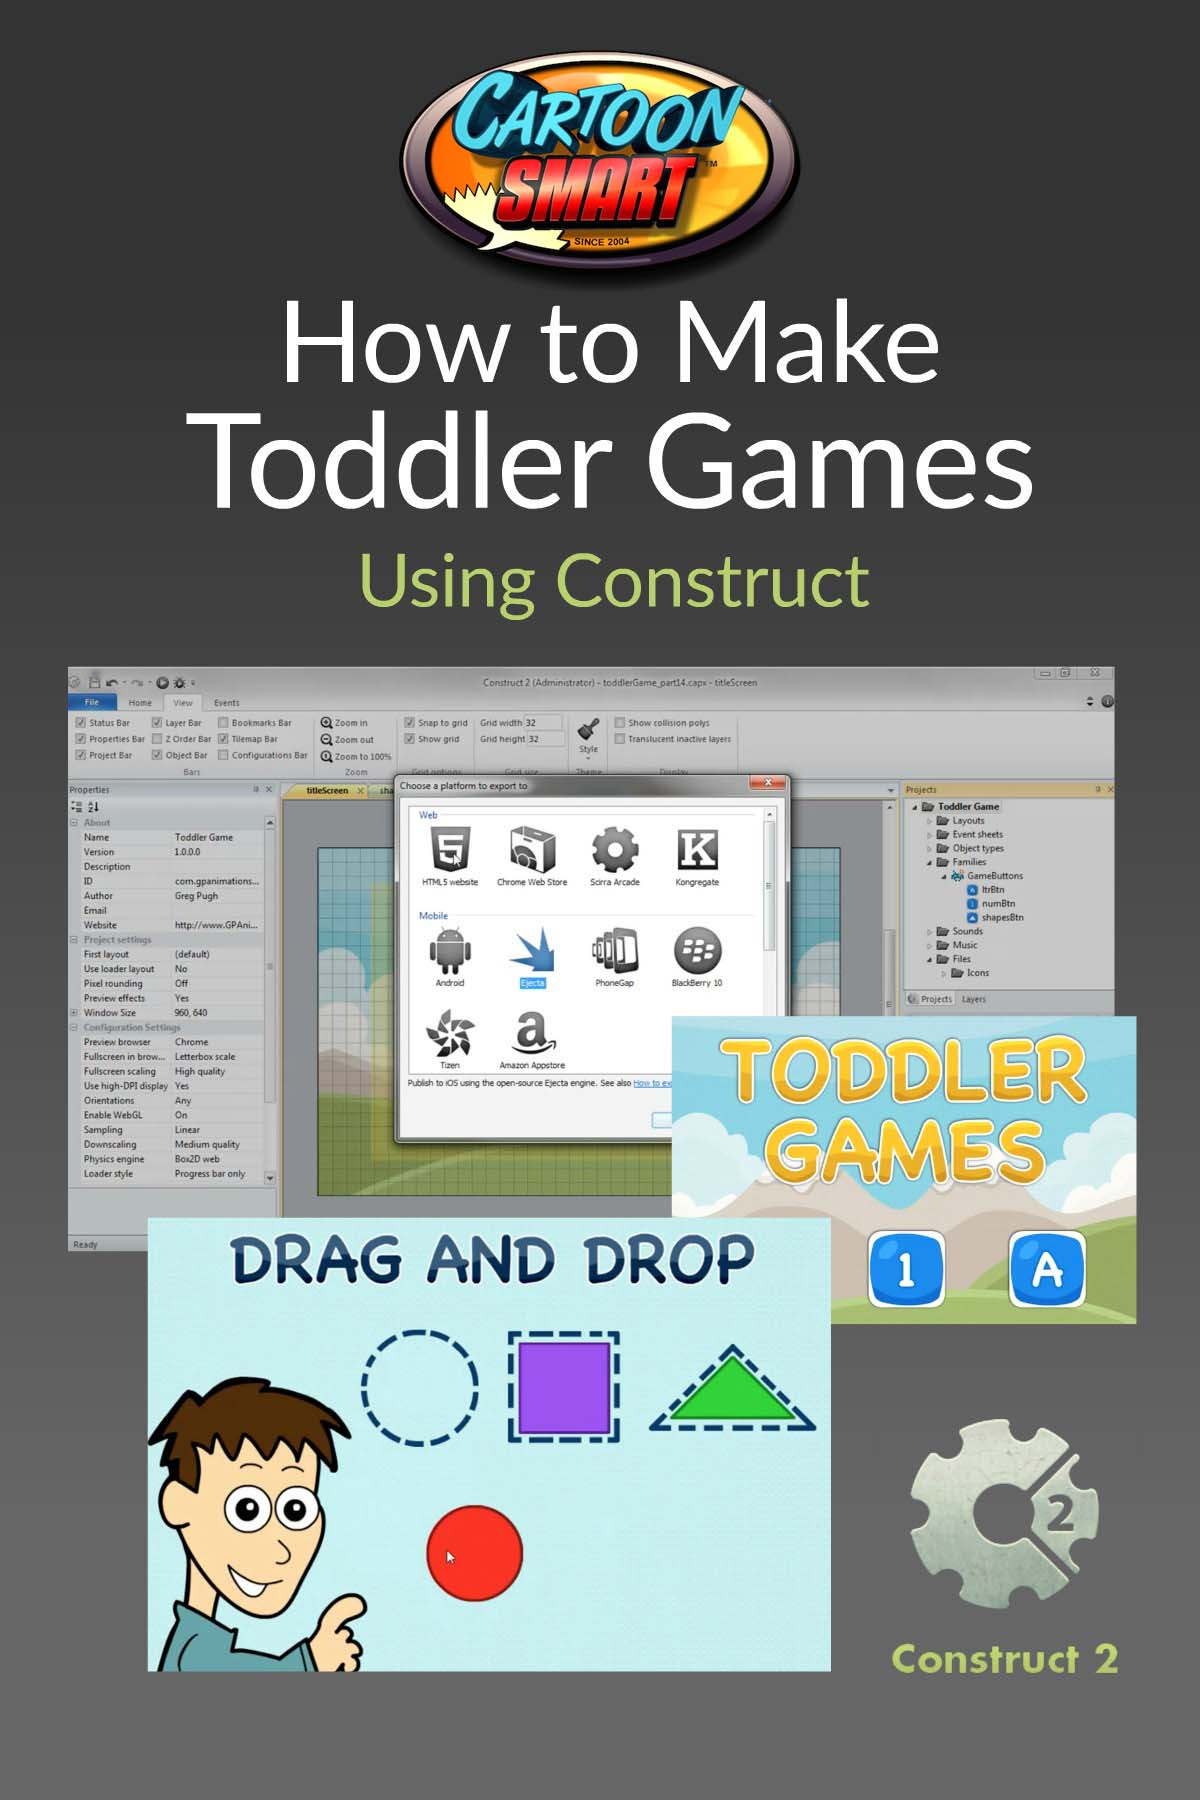 How to Make Toddler Games Video Tutorials for Construct 2